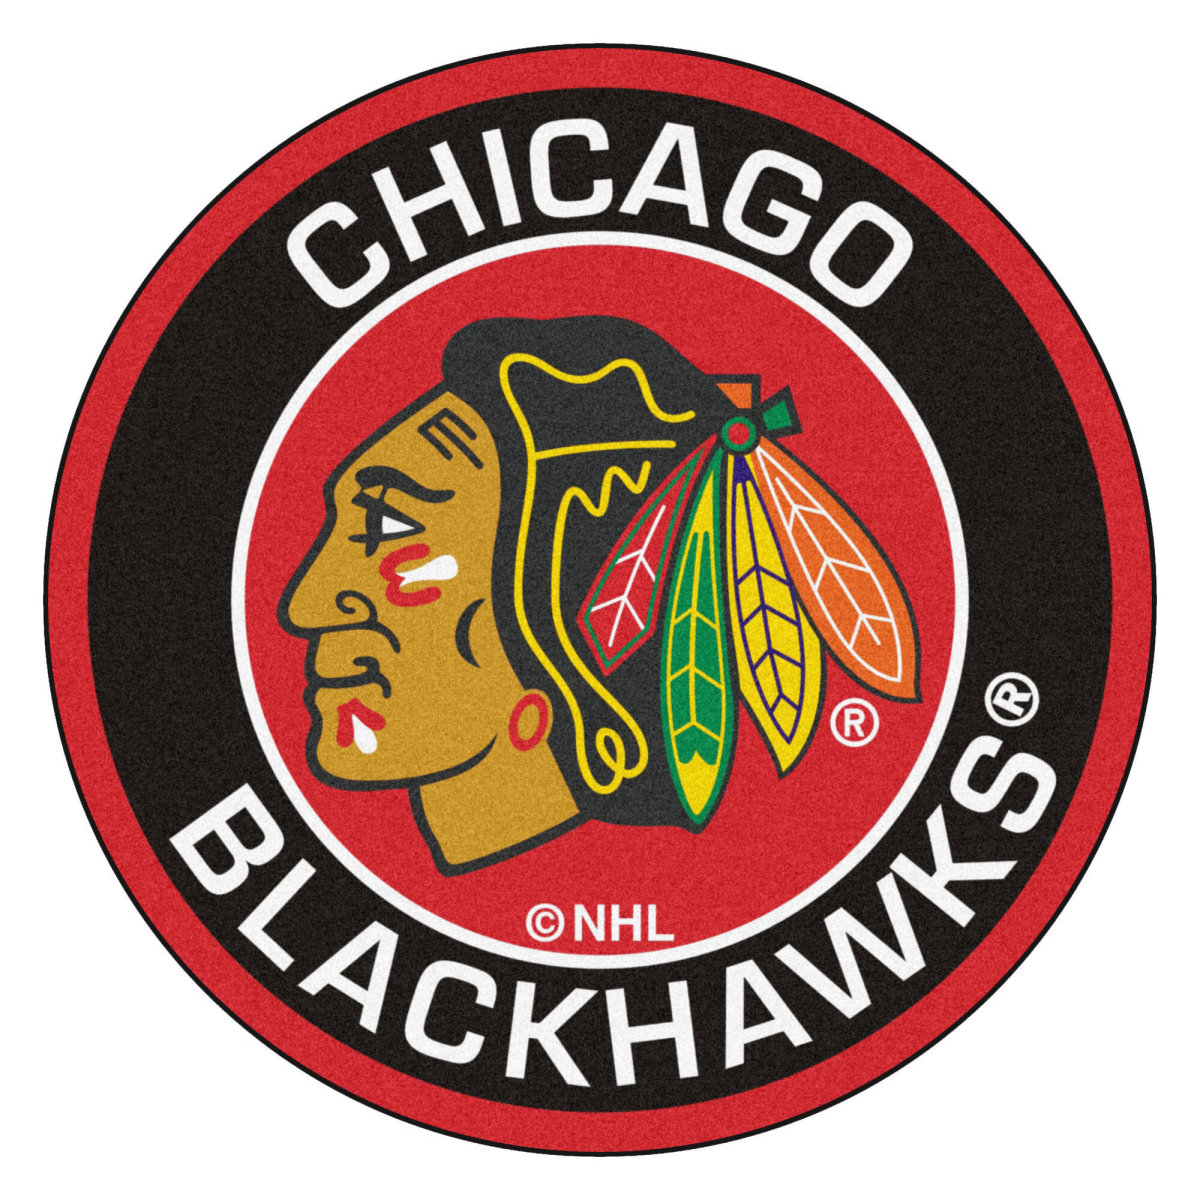 In 1961, the Chicago Blackhawks won the Stanley Cup.